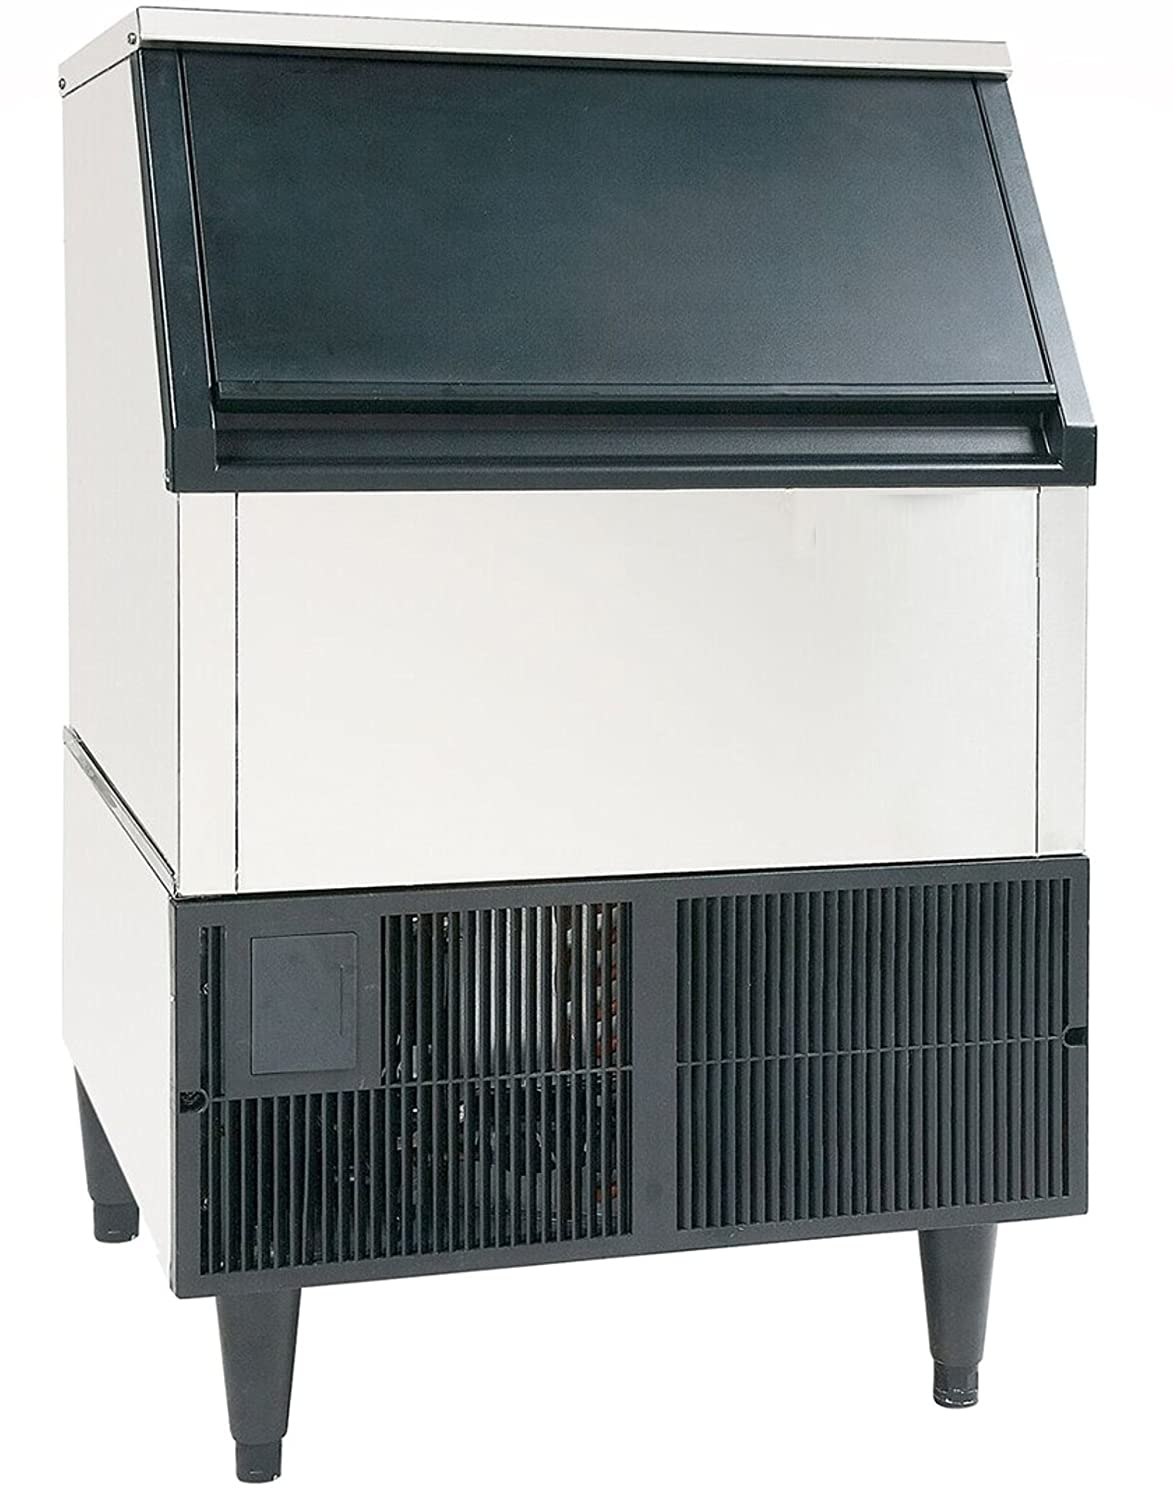 JET JIM260 Commercial Restaurant Kitchen Self Contained Stainless Steel Clear Ice Maker Machine Produces 260 Pounds of Ice Per Day Use Freestanding Undercounter Built-In, 24-Inch Wide, Silver